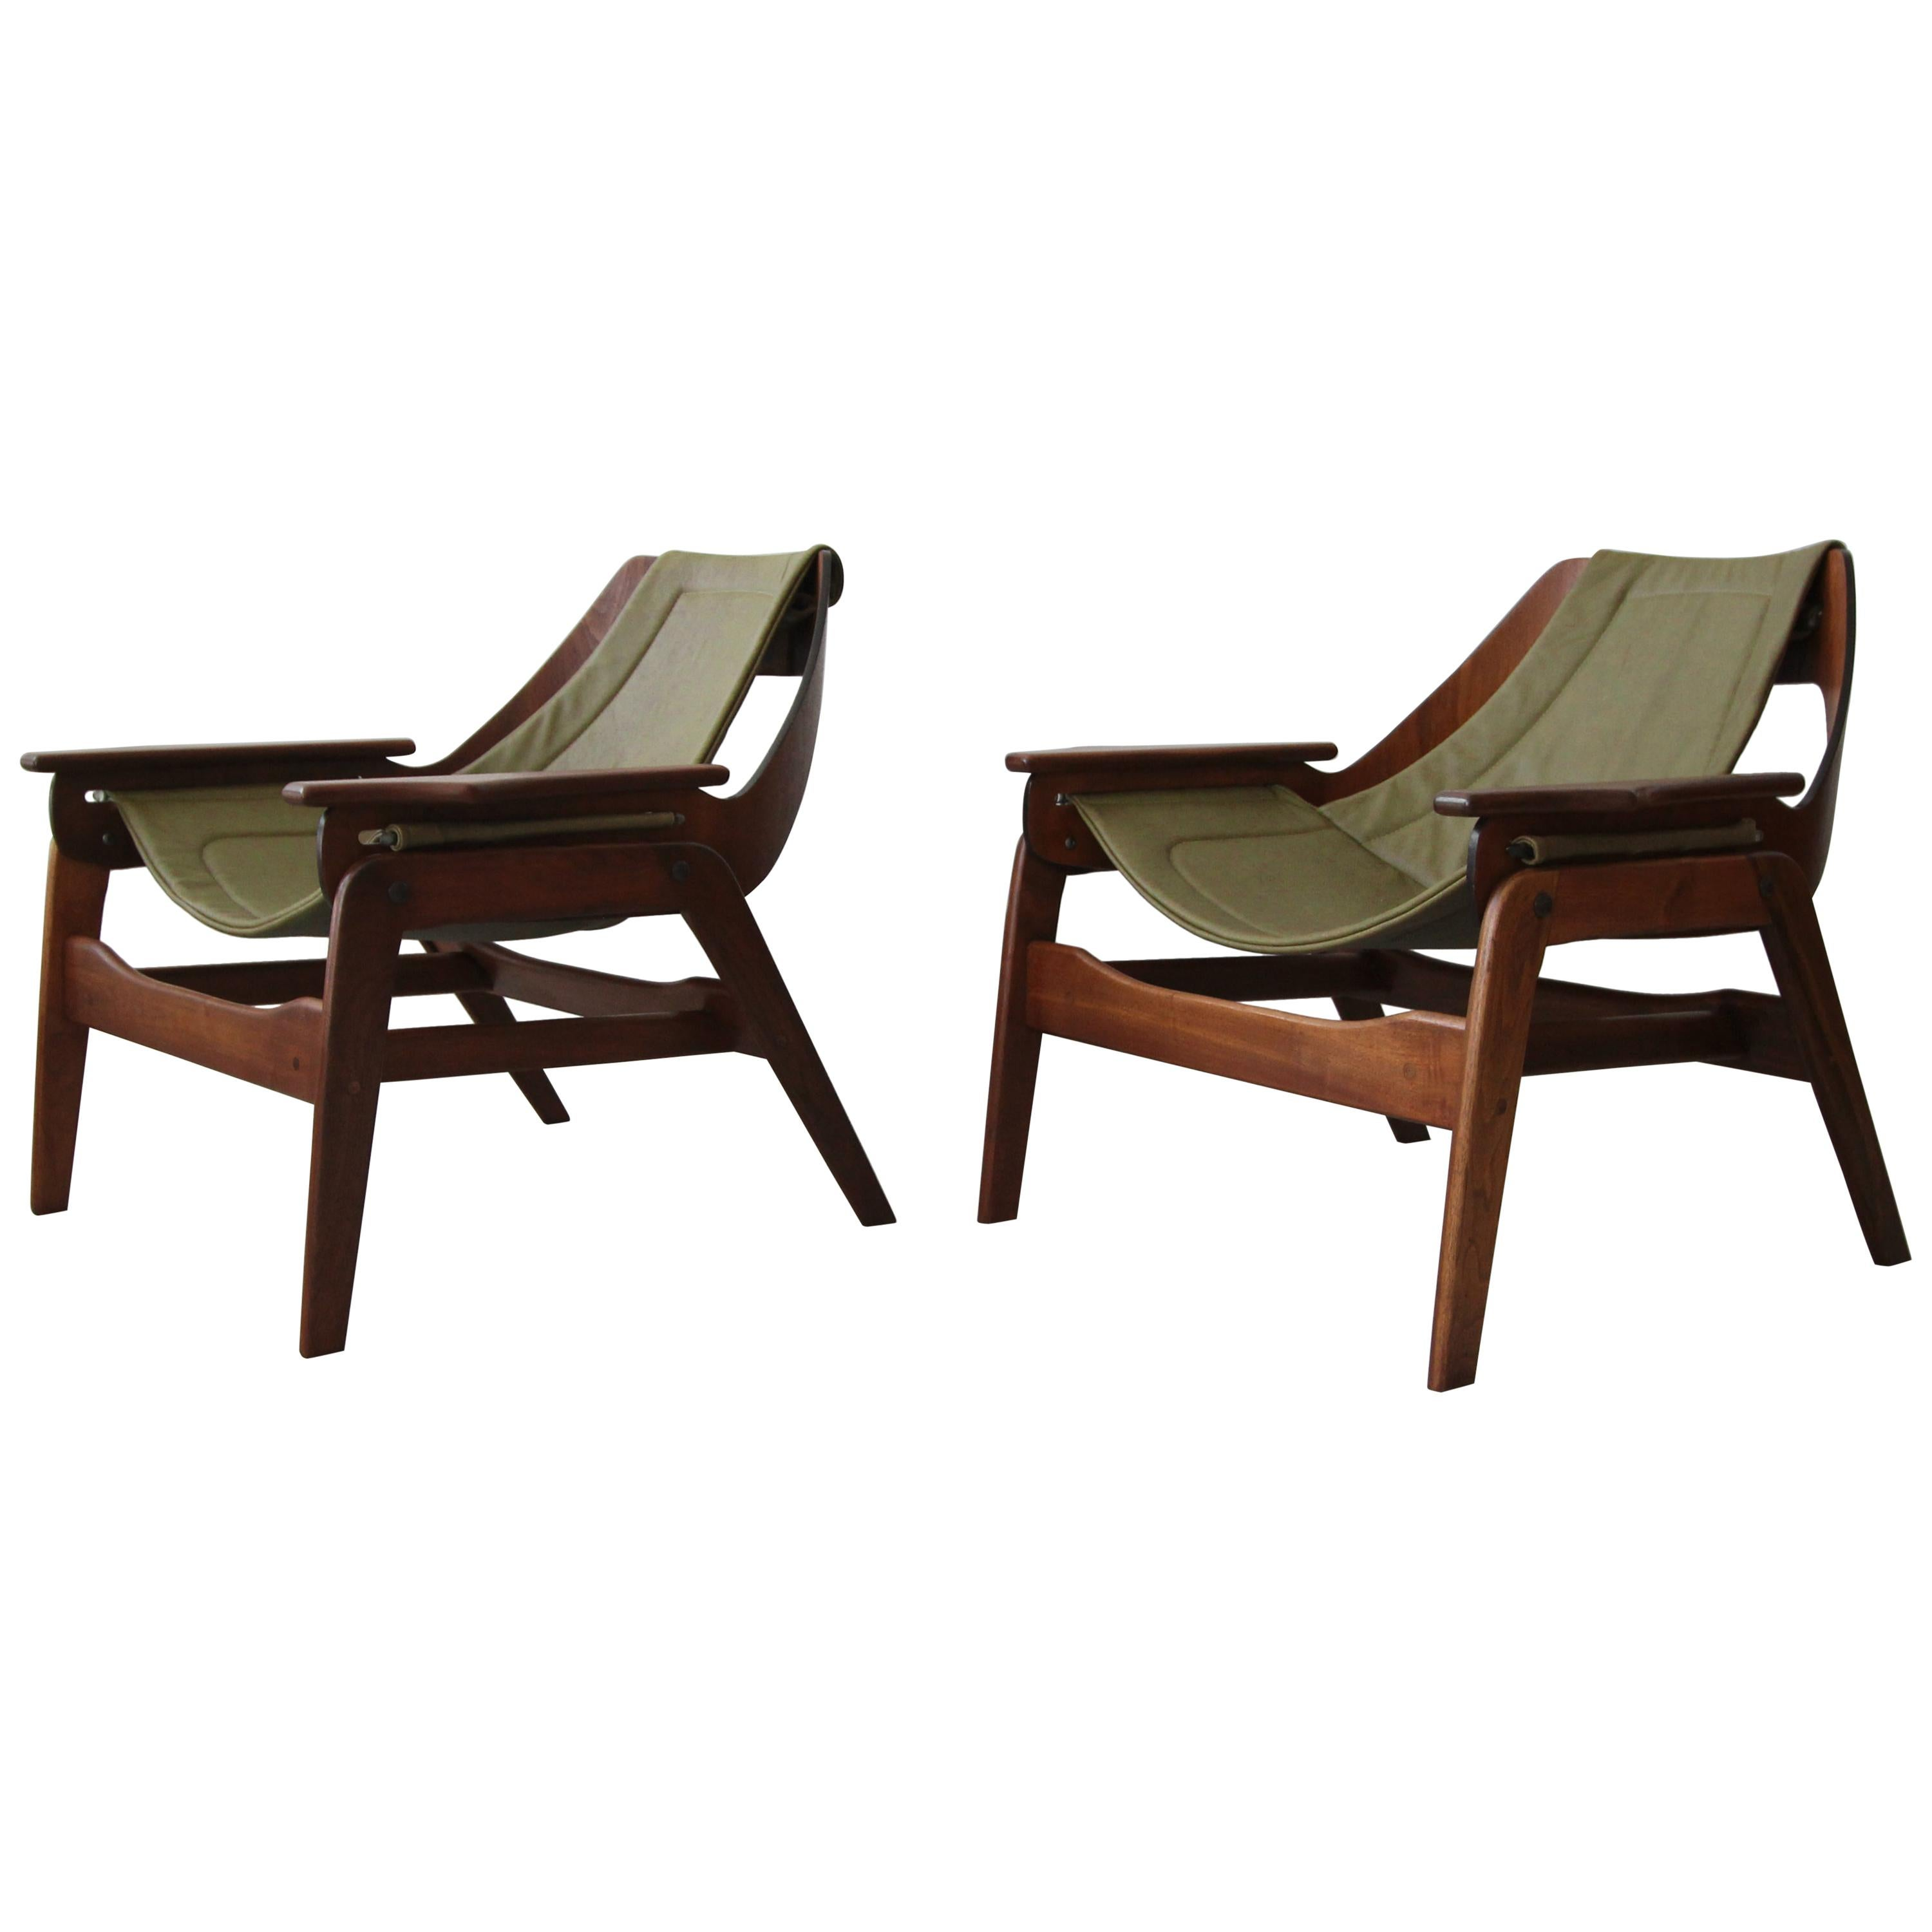 Pair Of Midcentury Leather And Walnut Sling Chairs By Jerry